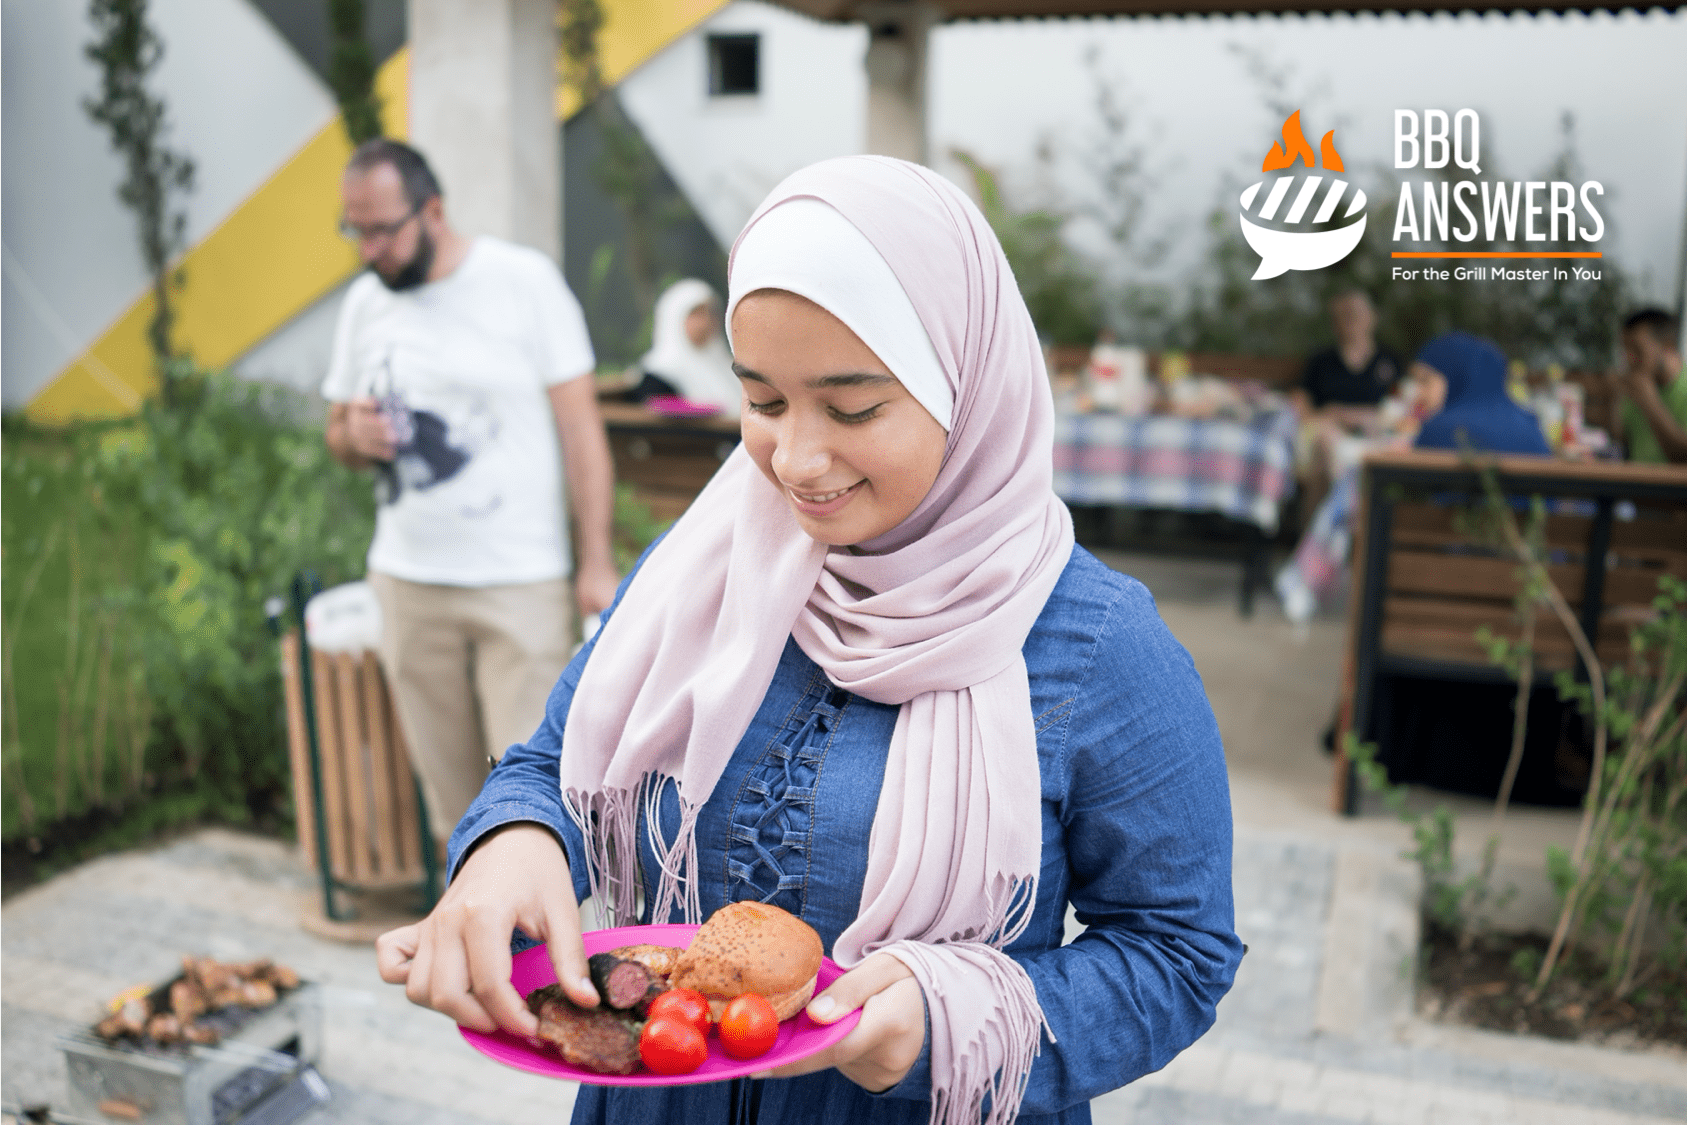 Halal Barbecue   Guide To Eating, Hosting, & Enjoying a Halal   BBQanswers